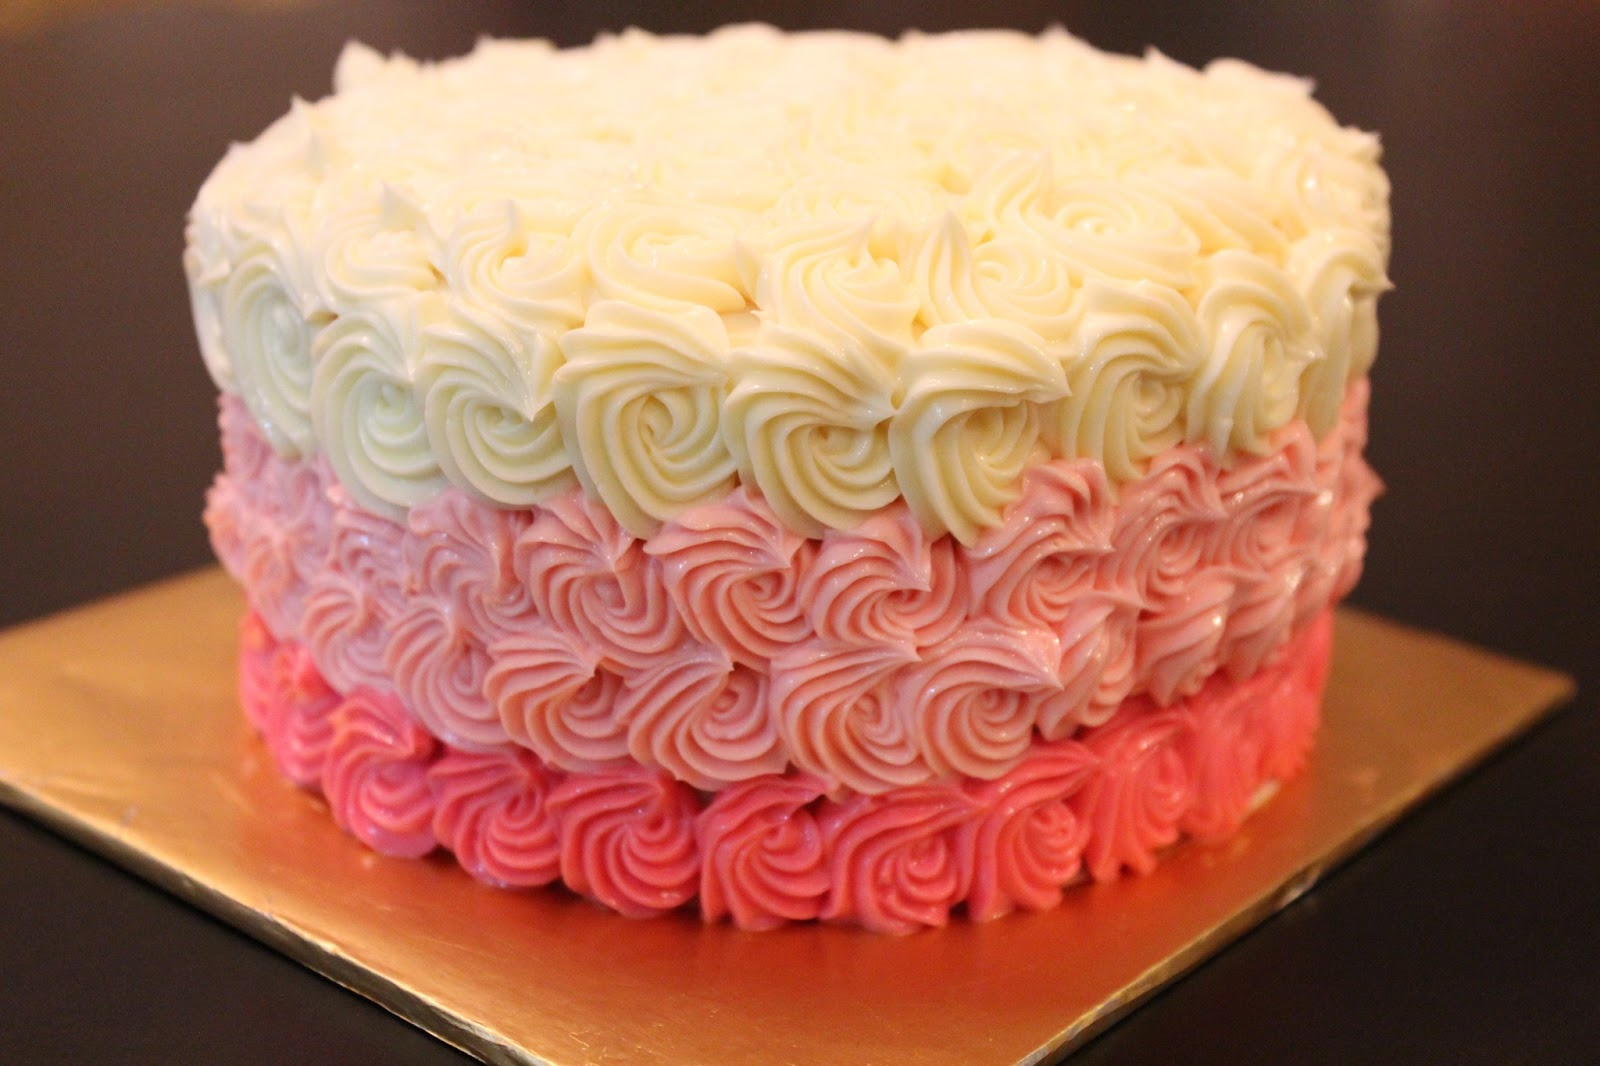 Images Of Cake With Icing : Bluepandacakes: Rainbow Cake with Ombre Buttercream Frosting